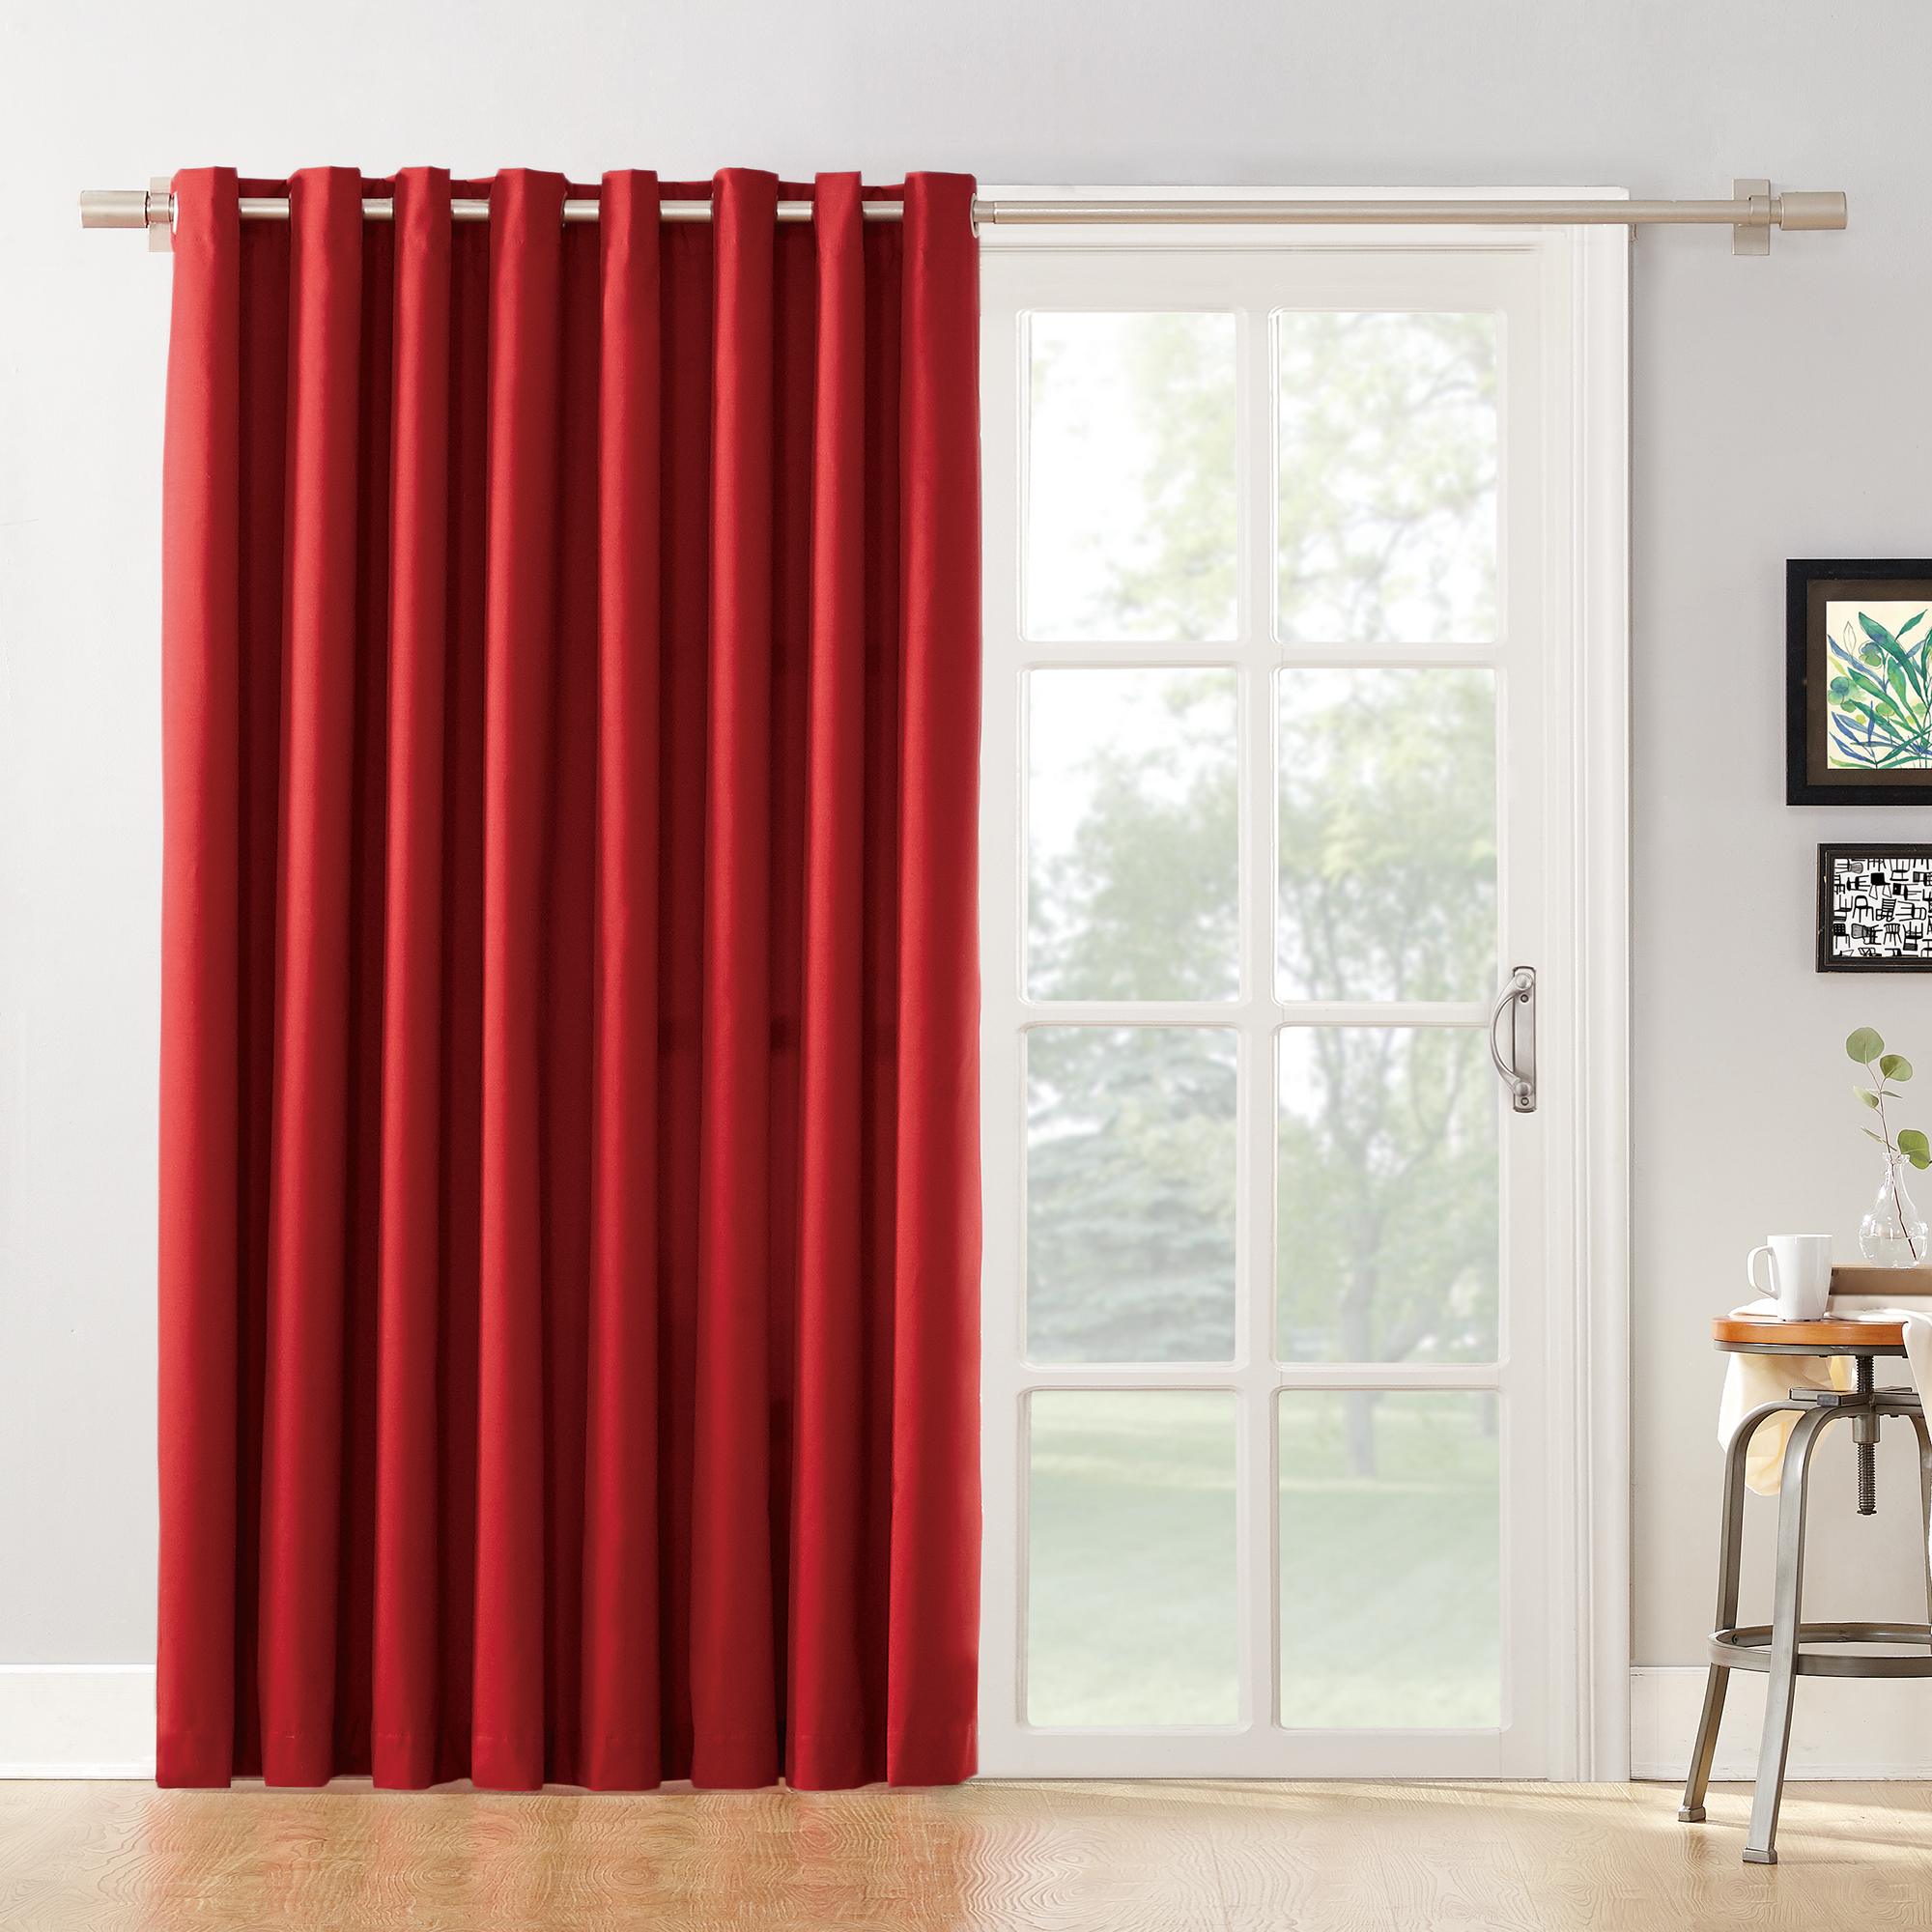 mainstays blackout energy efficient extra wide sliding glass door grommet curtain panel with detachable wand